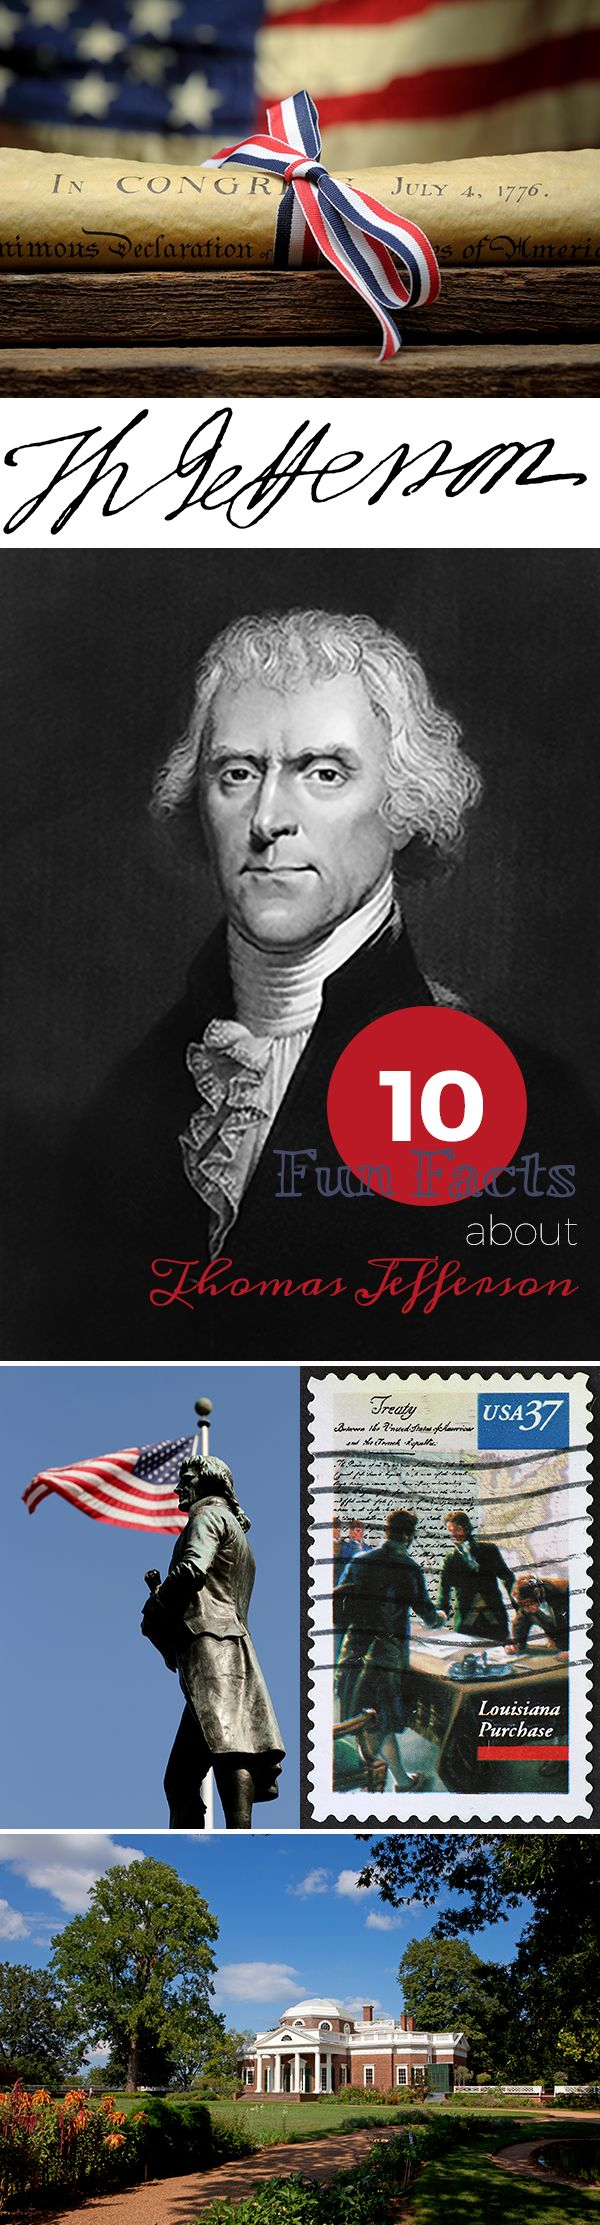 Did you know one of our founding fathers was totally into French Cuisine? Learn about this and other fun facts about Thomas Jefferson by clicking here!